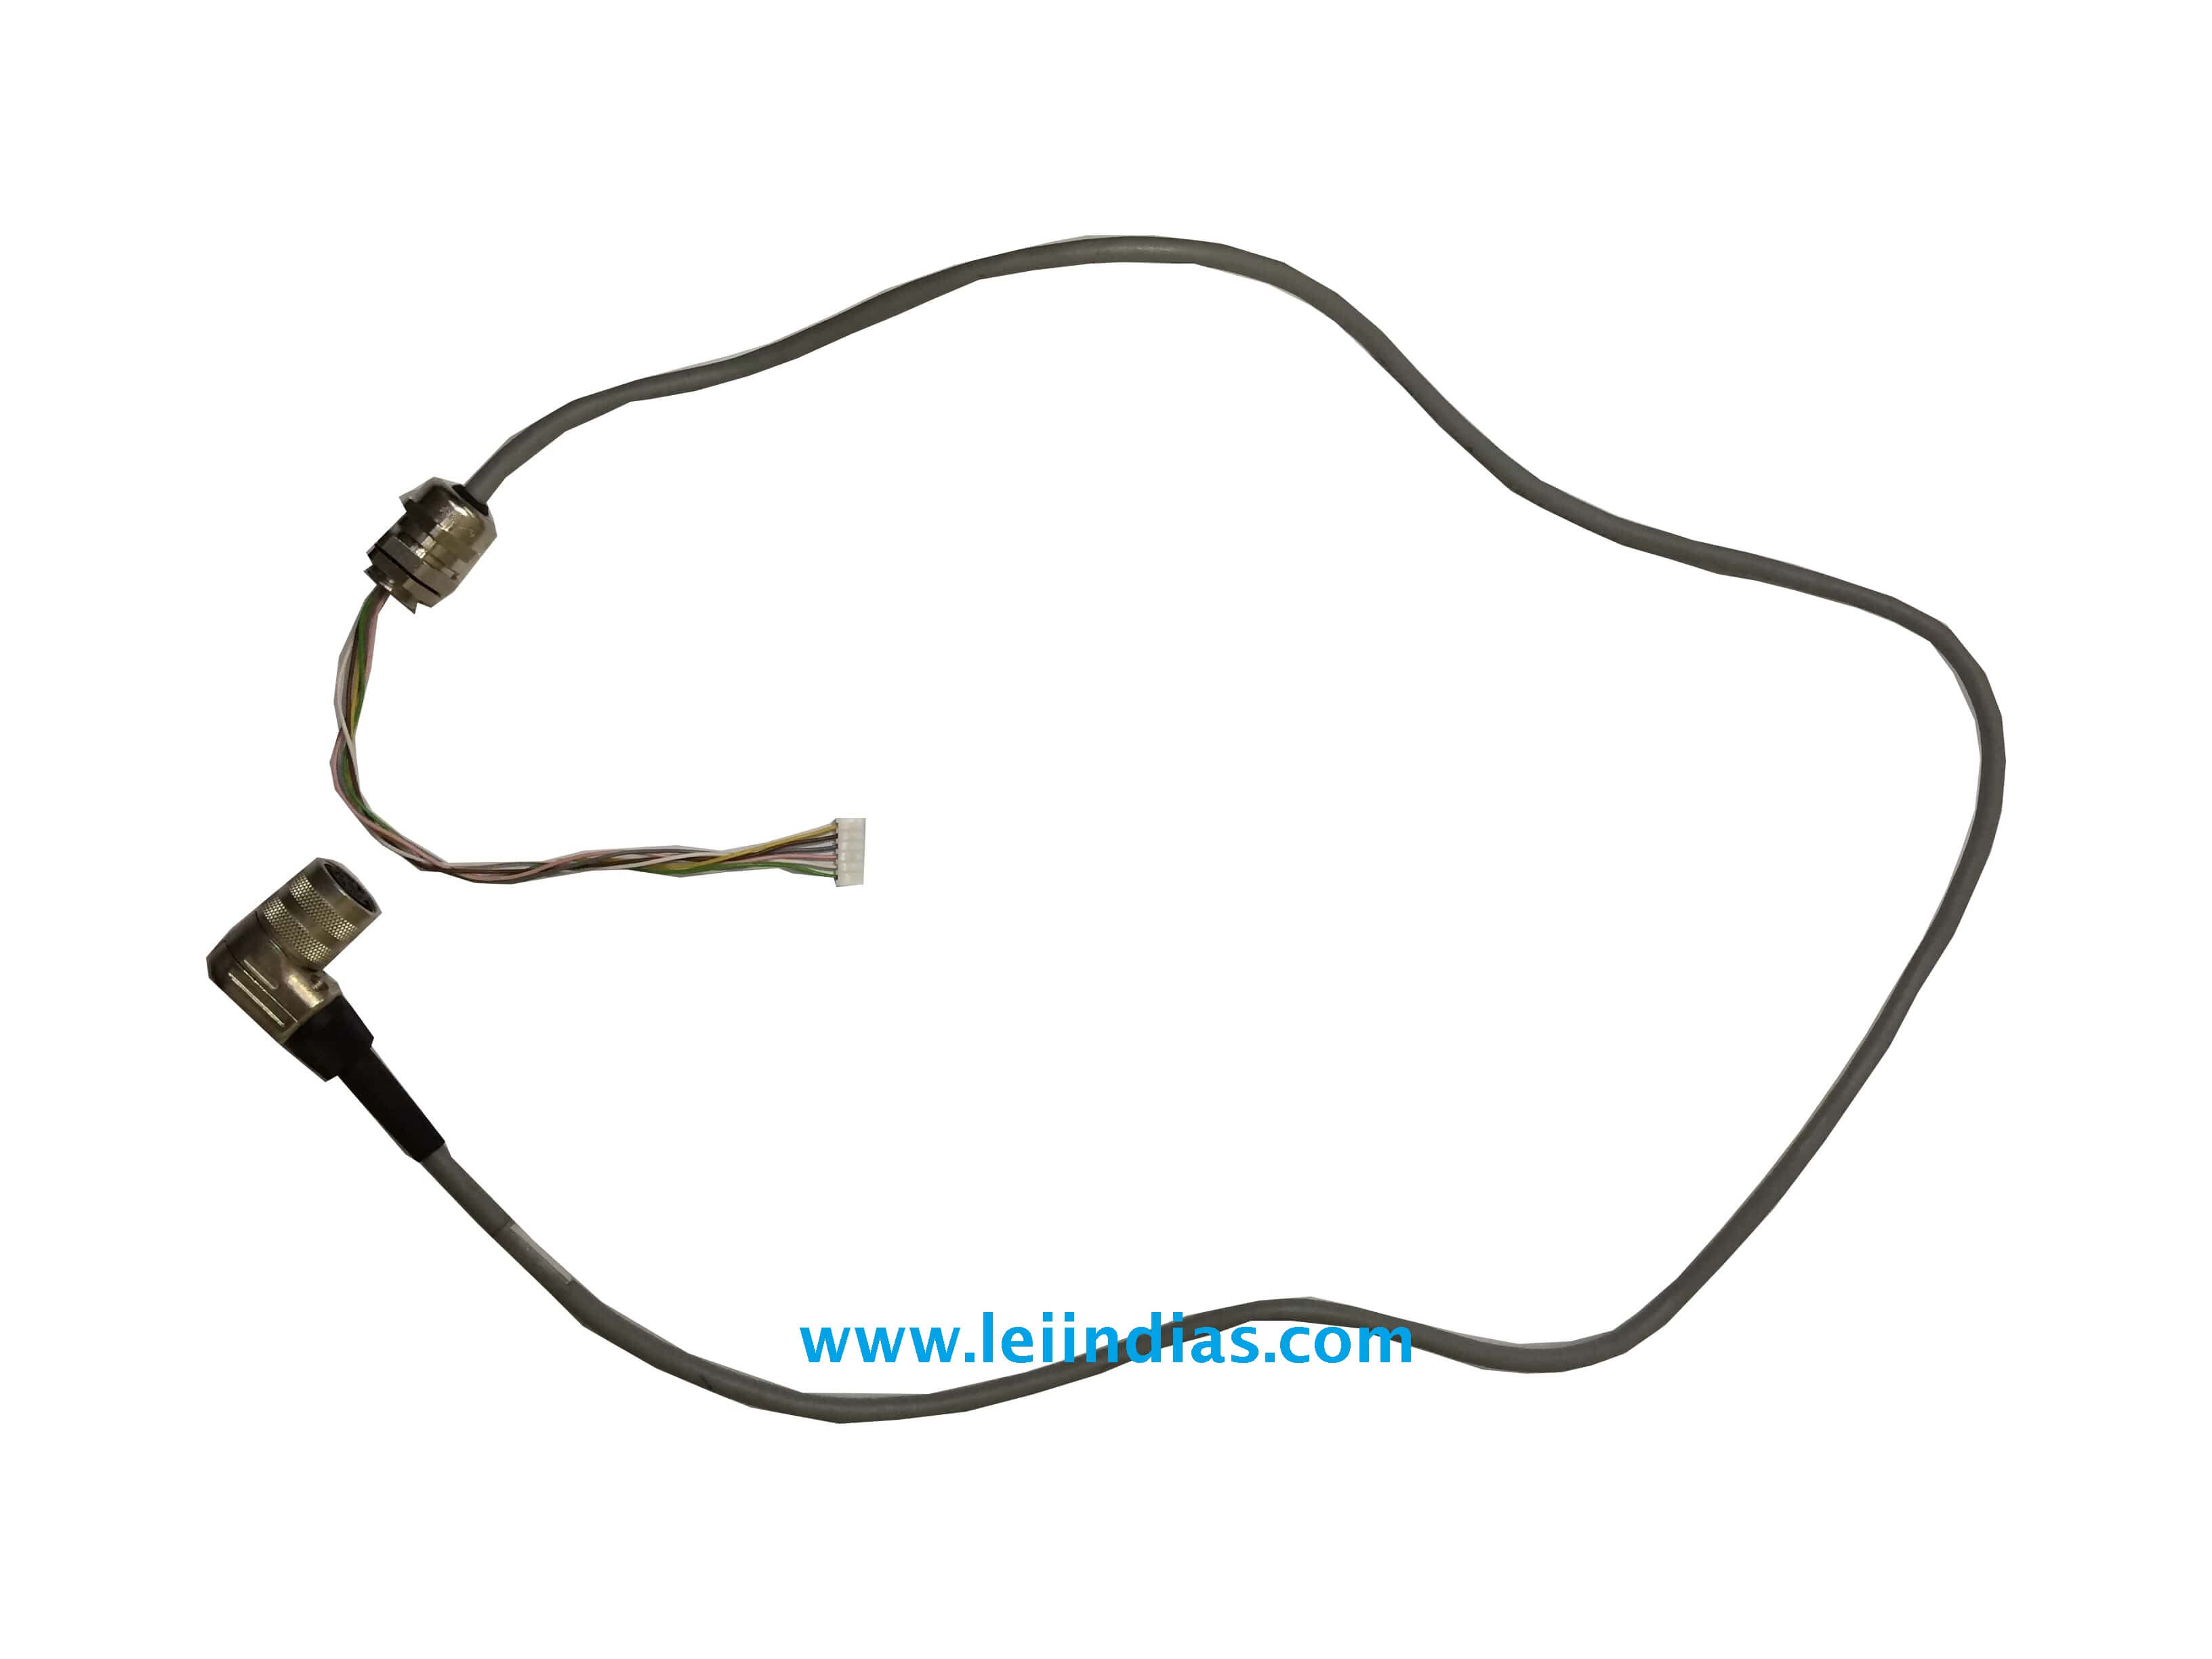 Wire Harness Manufacturer / Cable Assembly Manufacturer